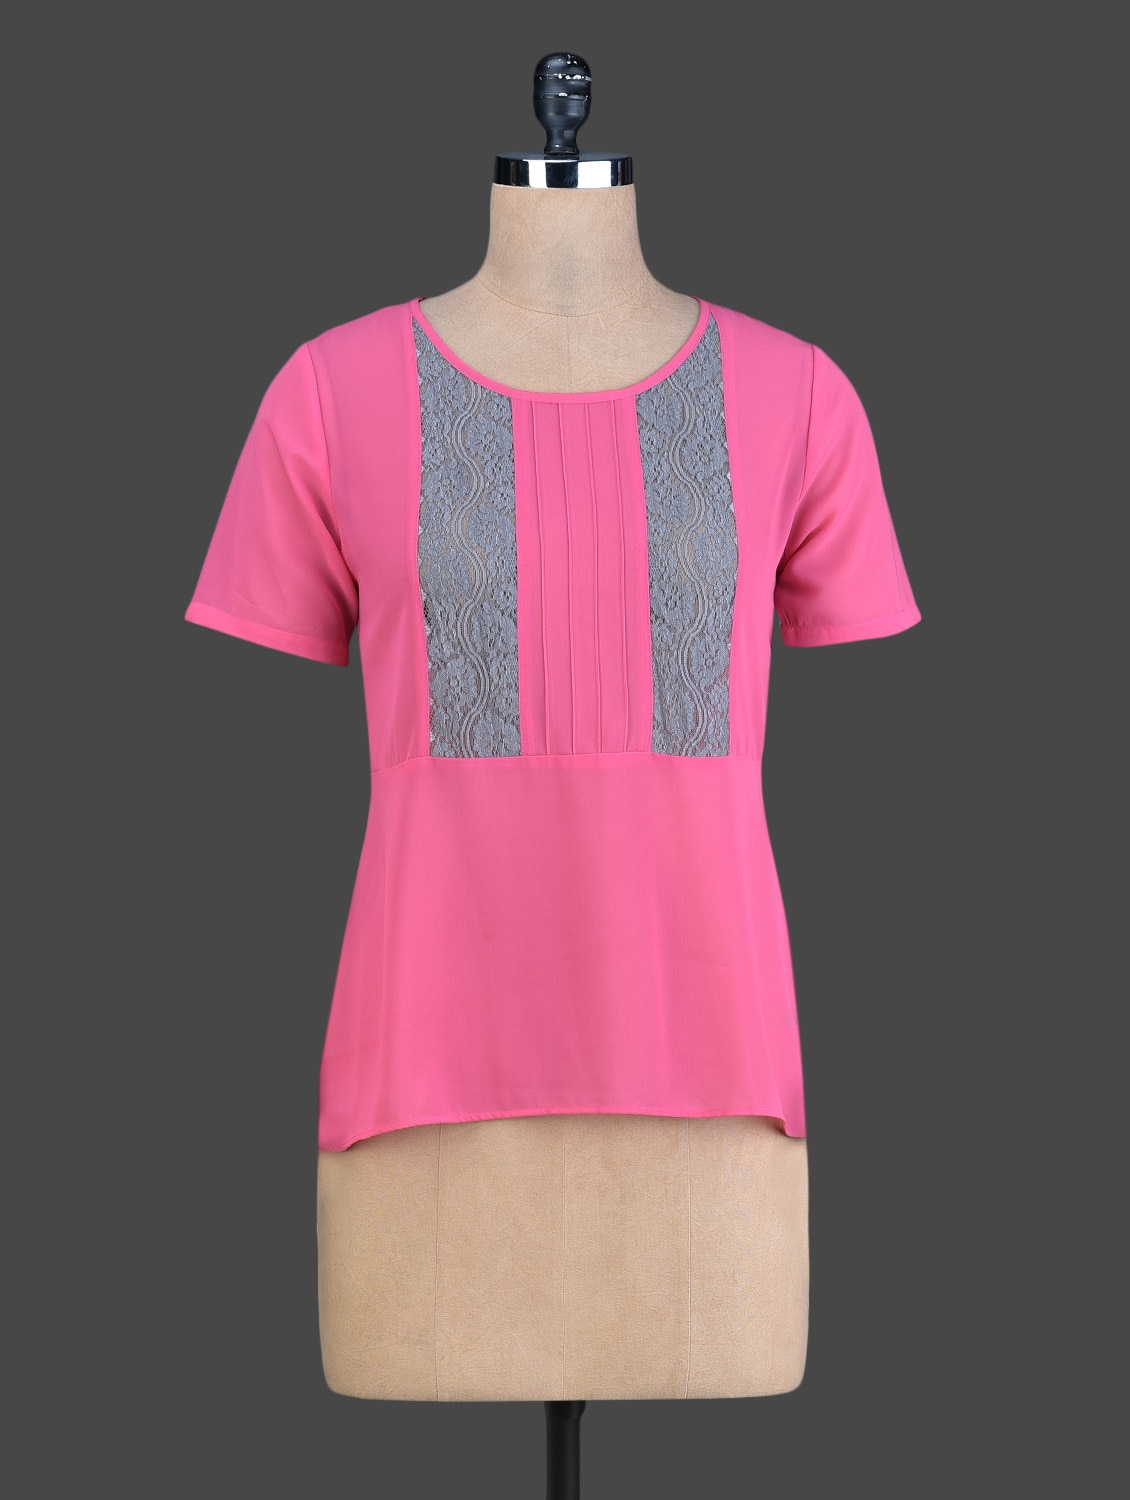 Pink High-Low Top With Blue Lace Panels - Instacrush